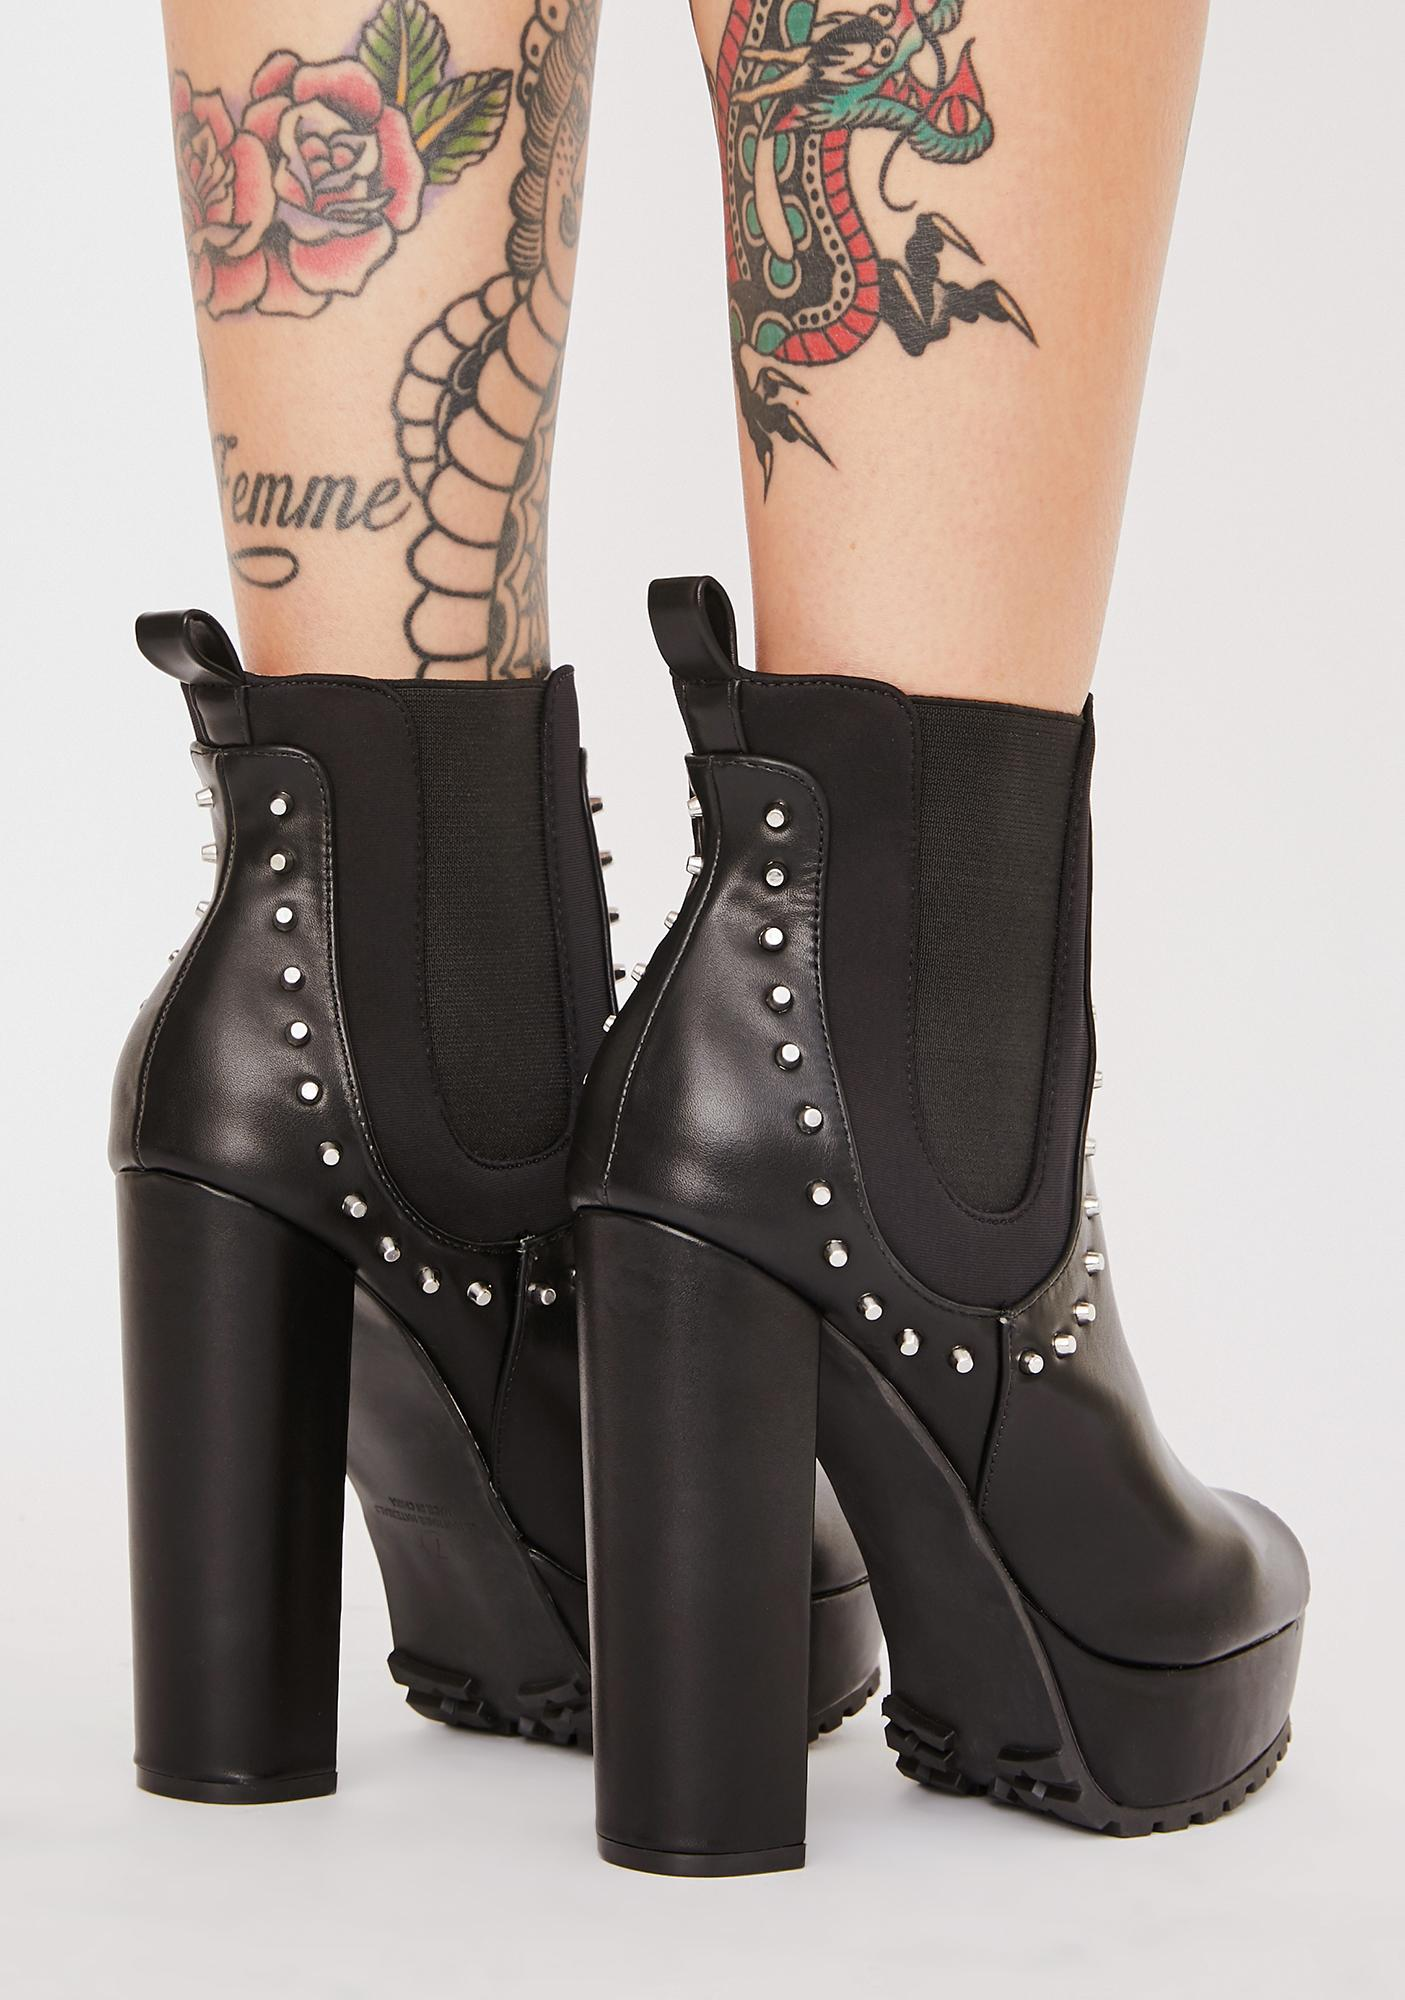 Whatz My Name Ankle Boots